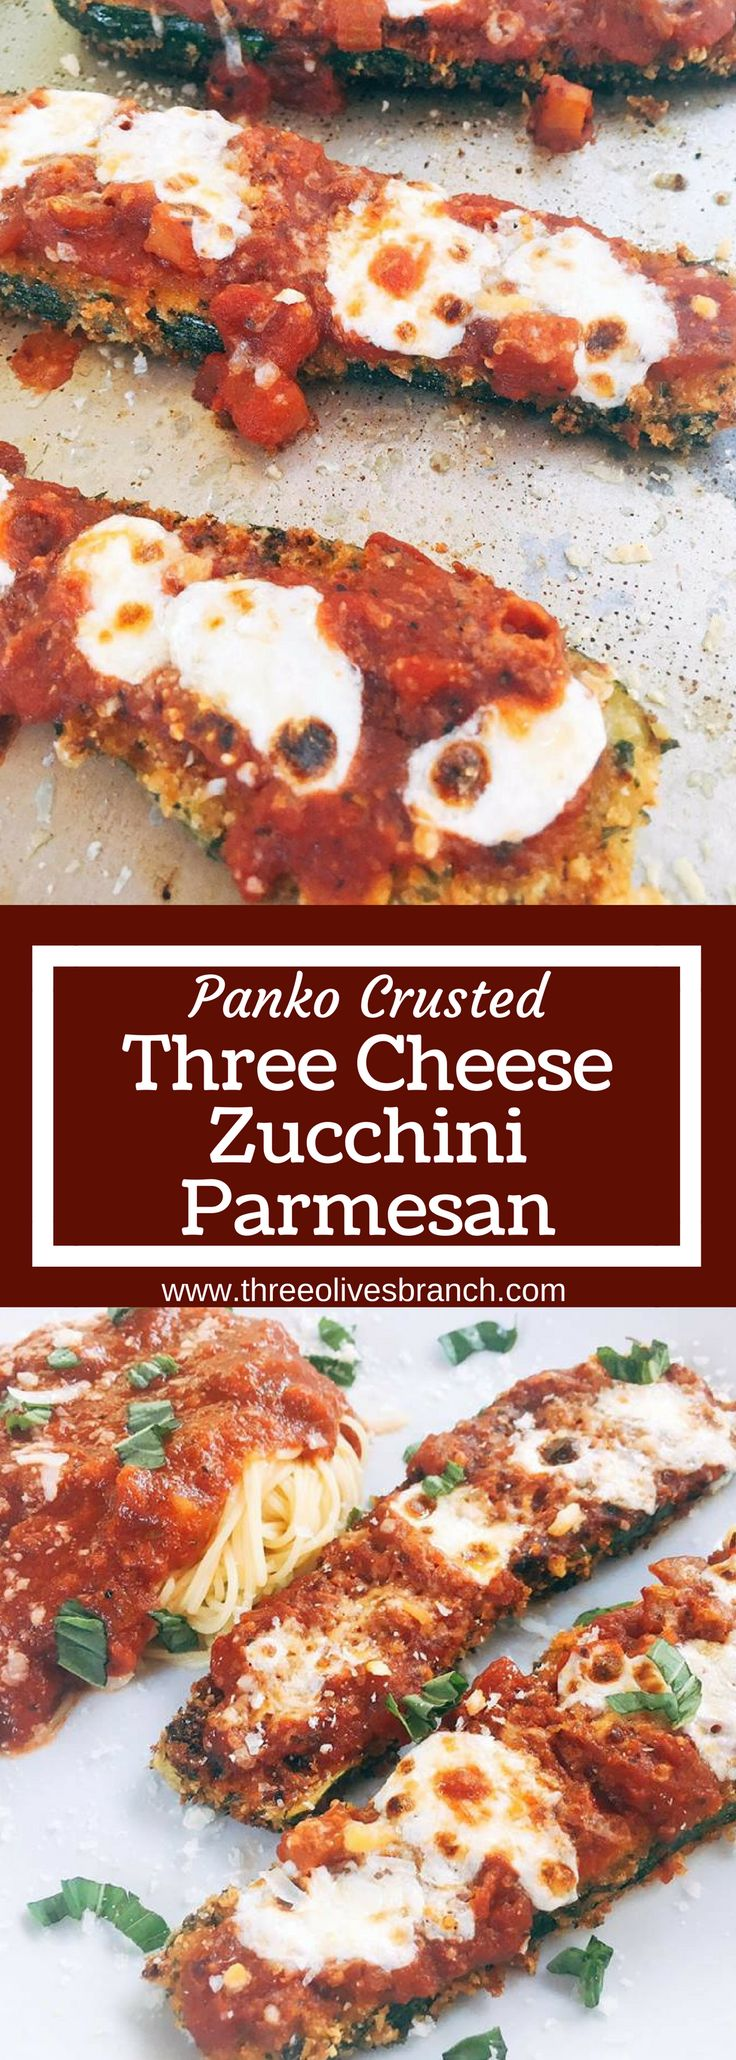 Vegetarian zucchini parm uses three cheeses and a crunchy panko breadcrumb crust to make an amazing alternative to chicken parmesan. Great for weekend meals and finding new ways to use vegetables.   Panko Crusted Three Cheese Zucchini Parmesan   www.threeolivesbranch.com